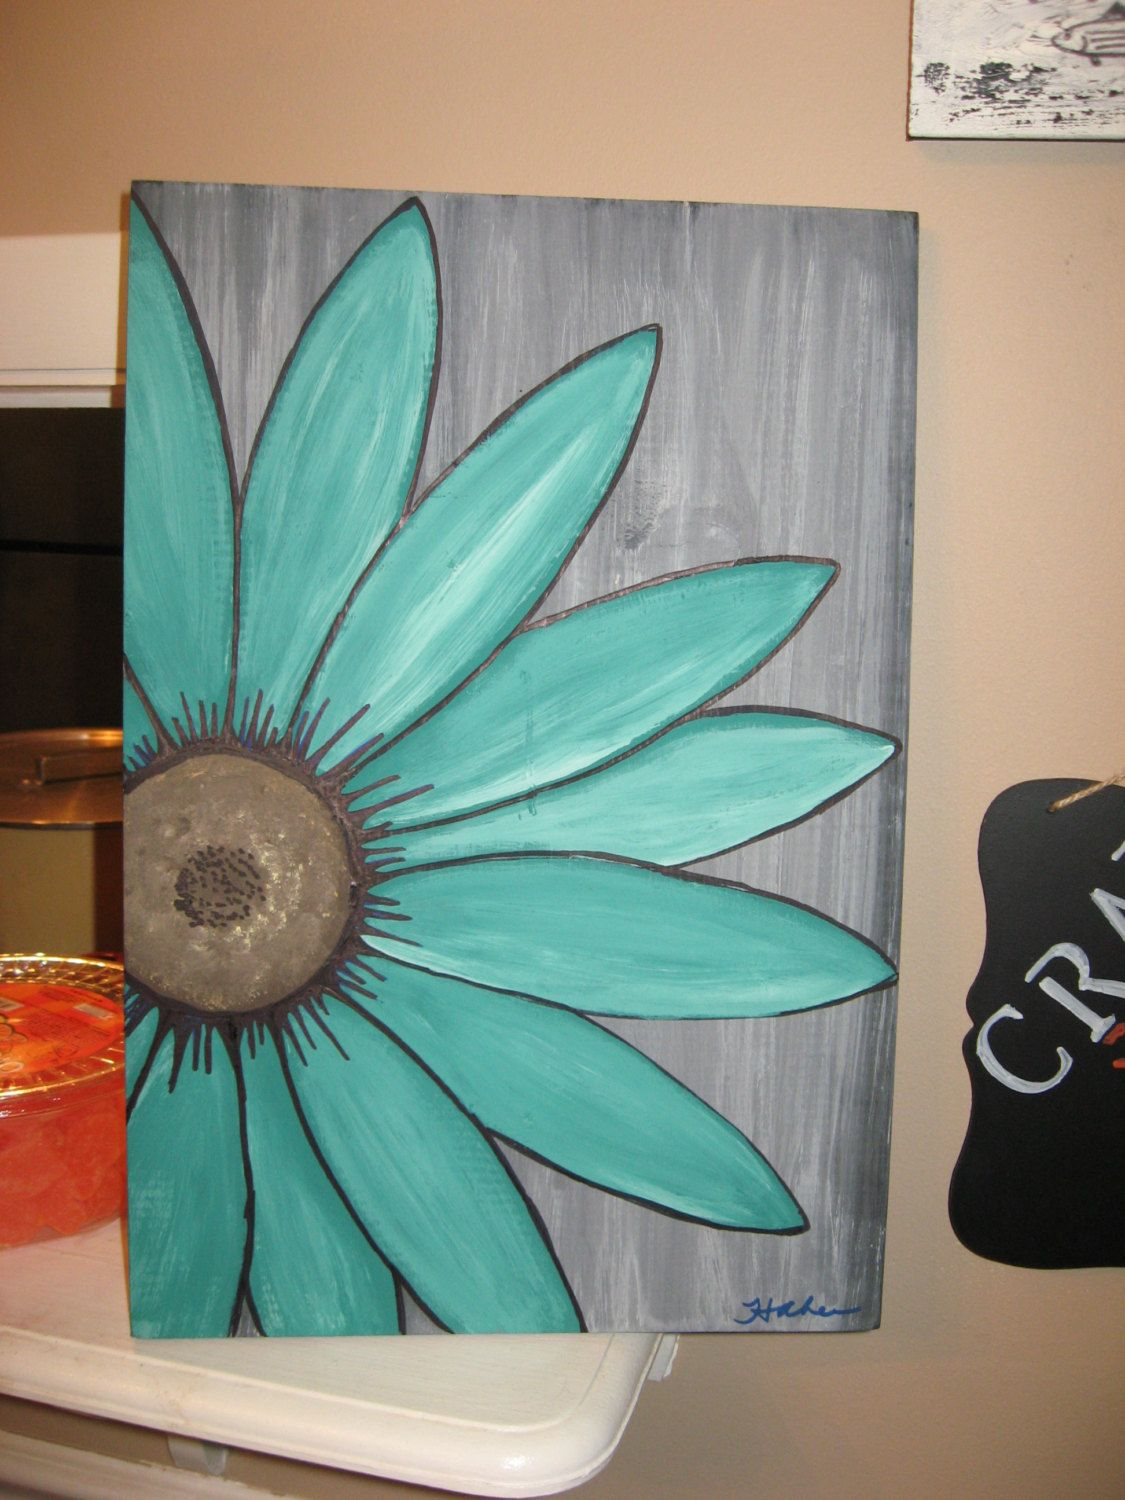 Rustic Canvas Painting Ideas Turquoise Flower Daisy Painting Rustic Flower Wood Flower